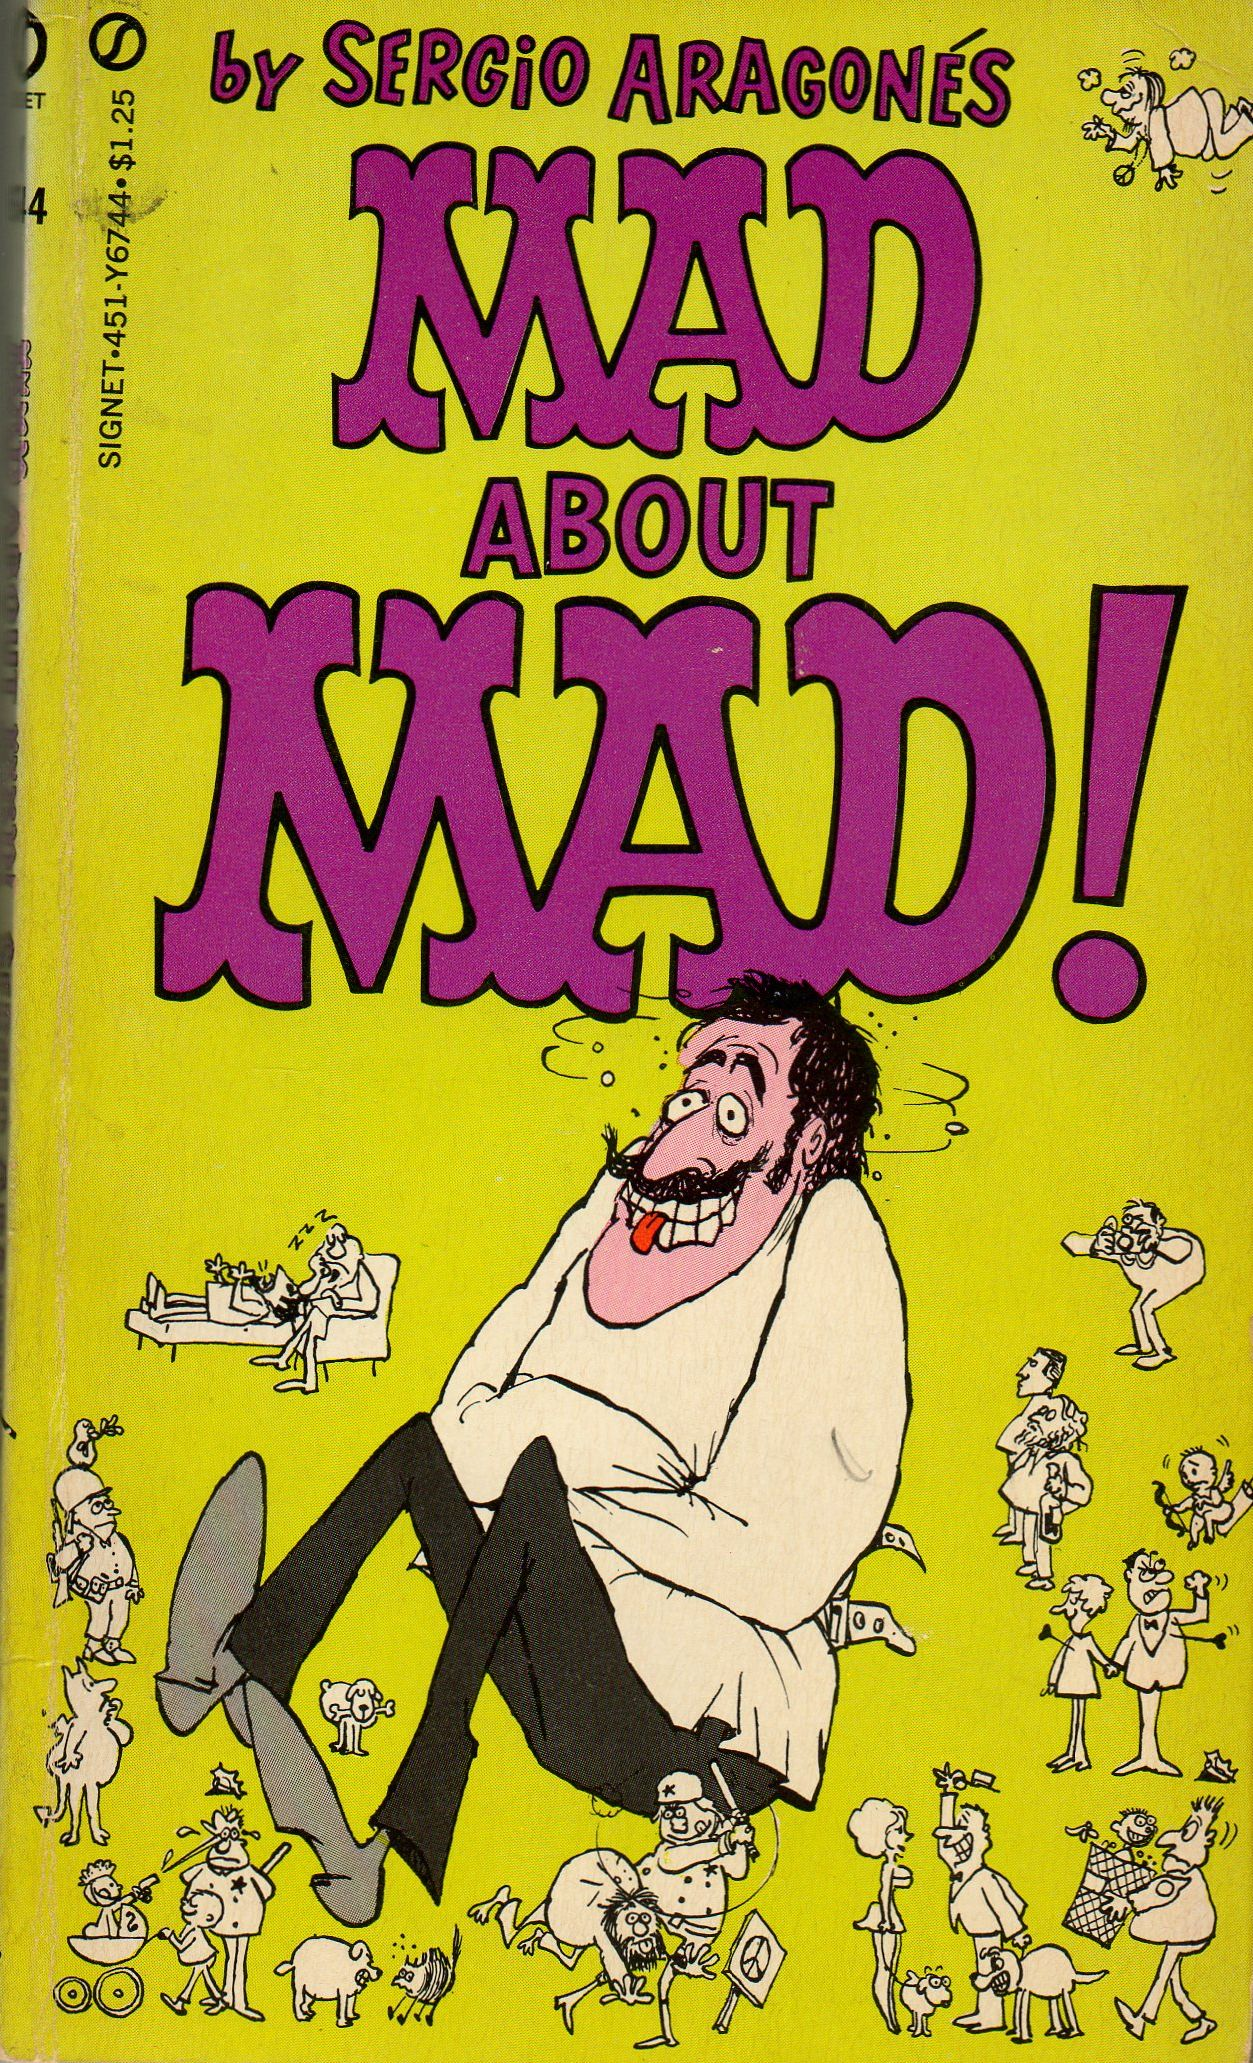 Mad about Mad